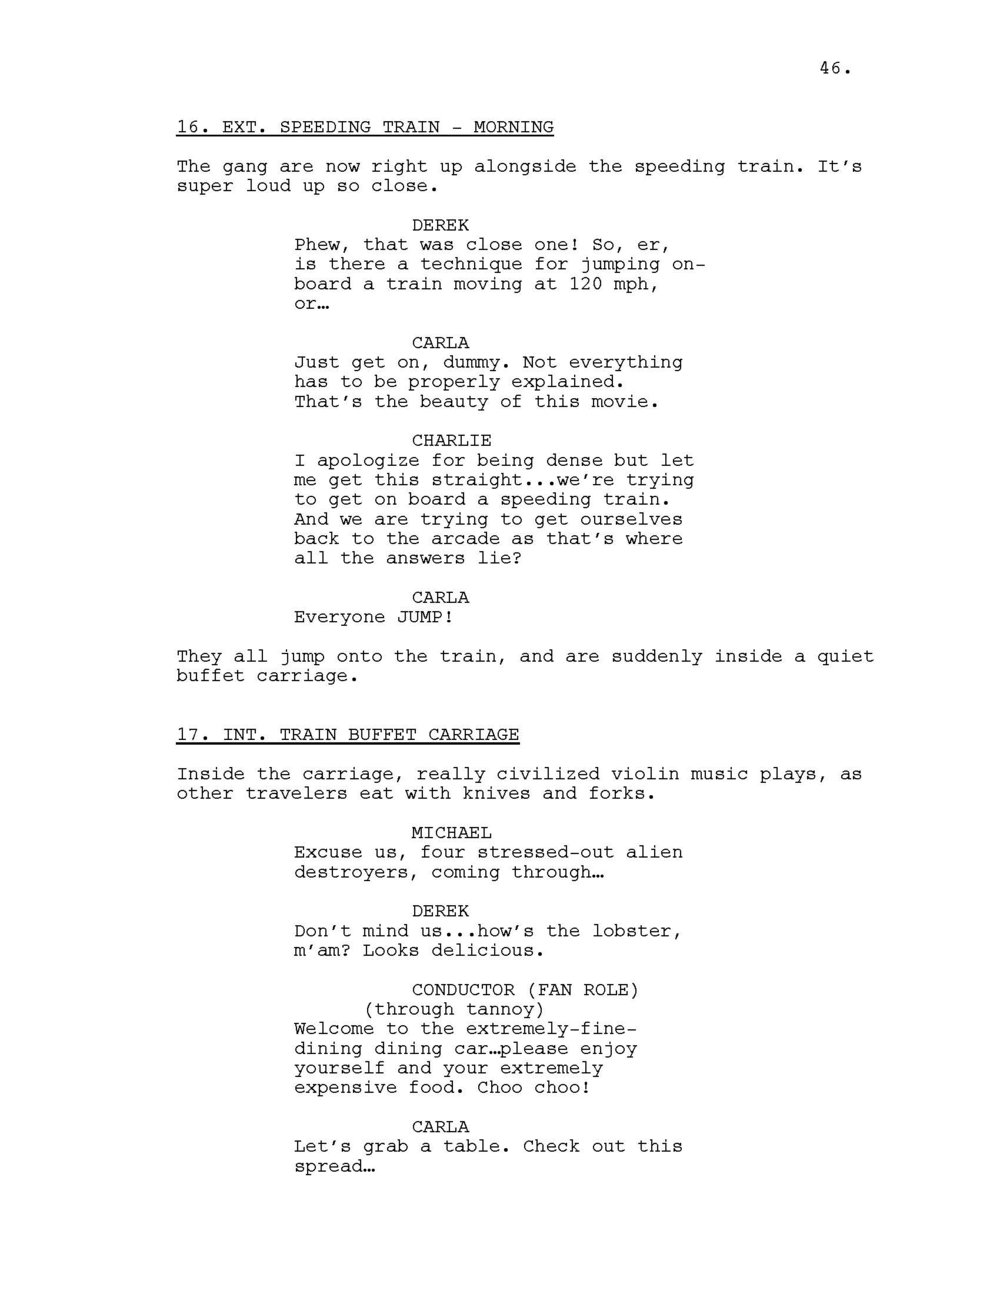 INVISIBLE WORLD SCRIPT_Page_047.jpg